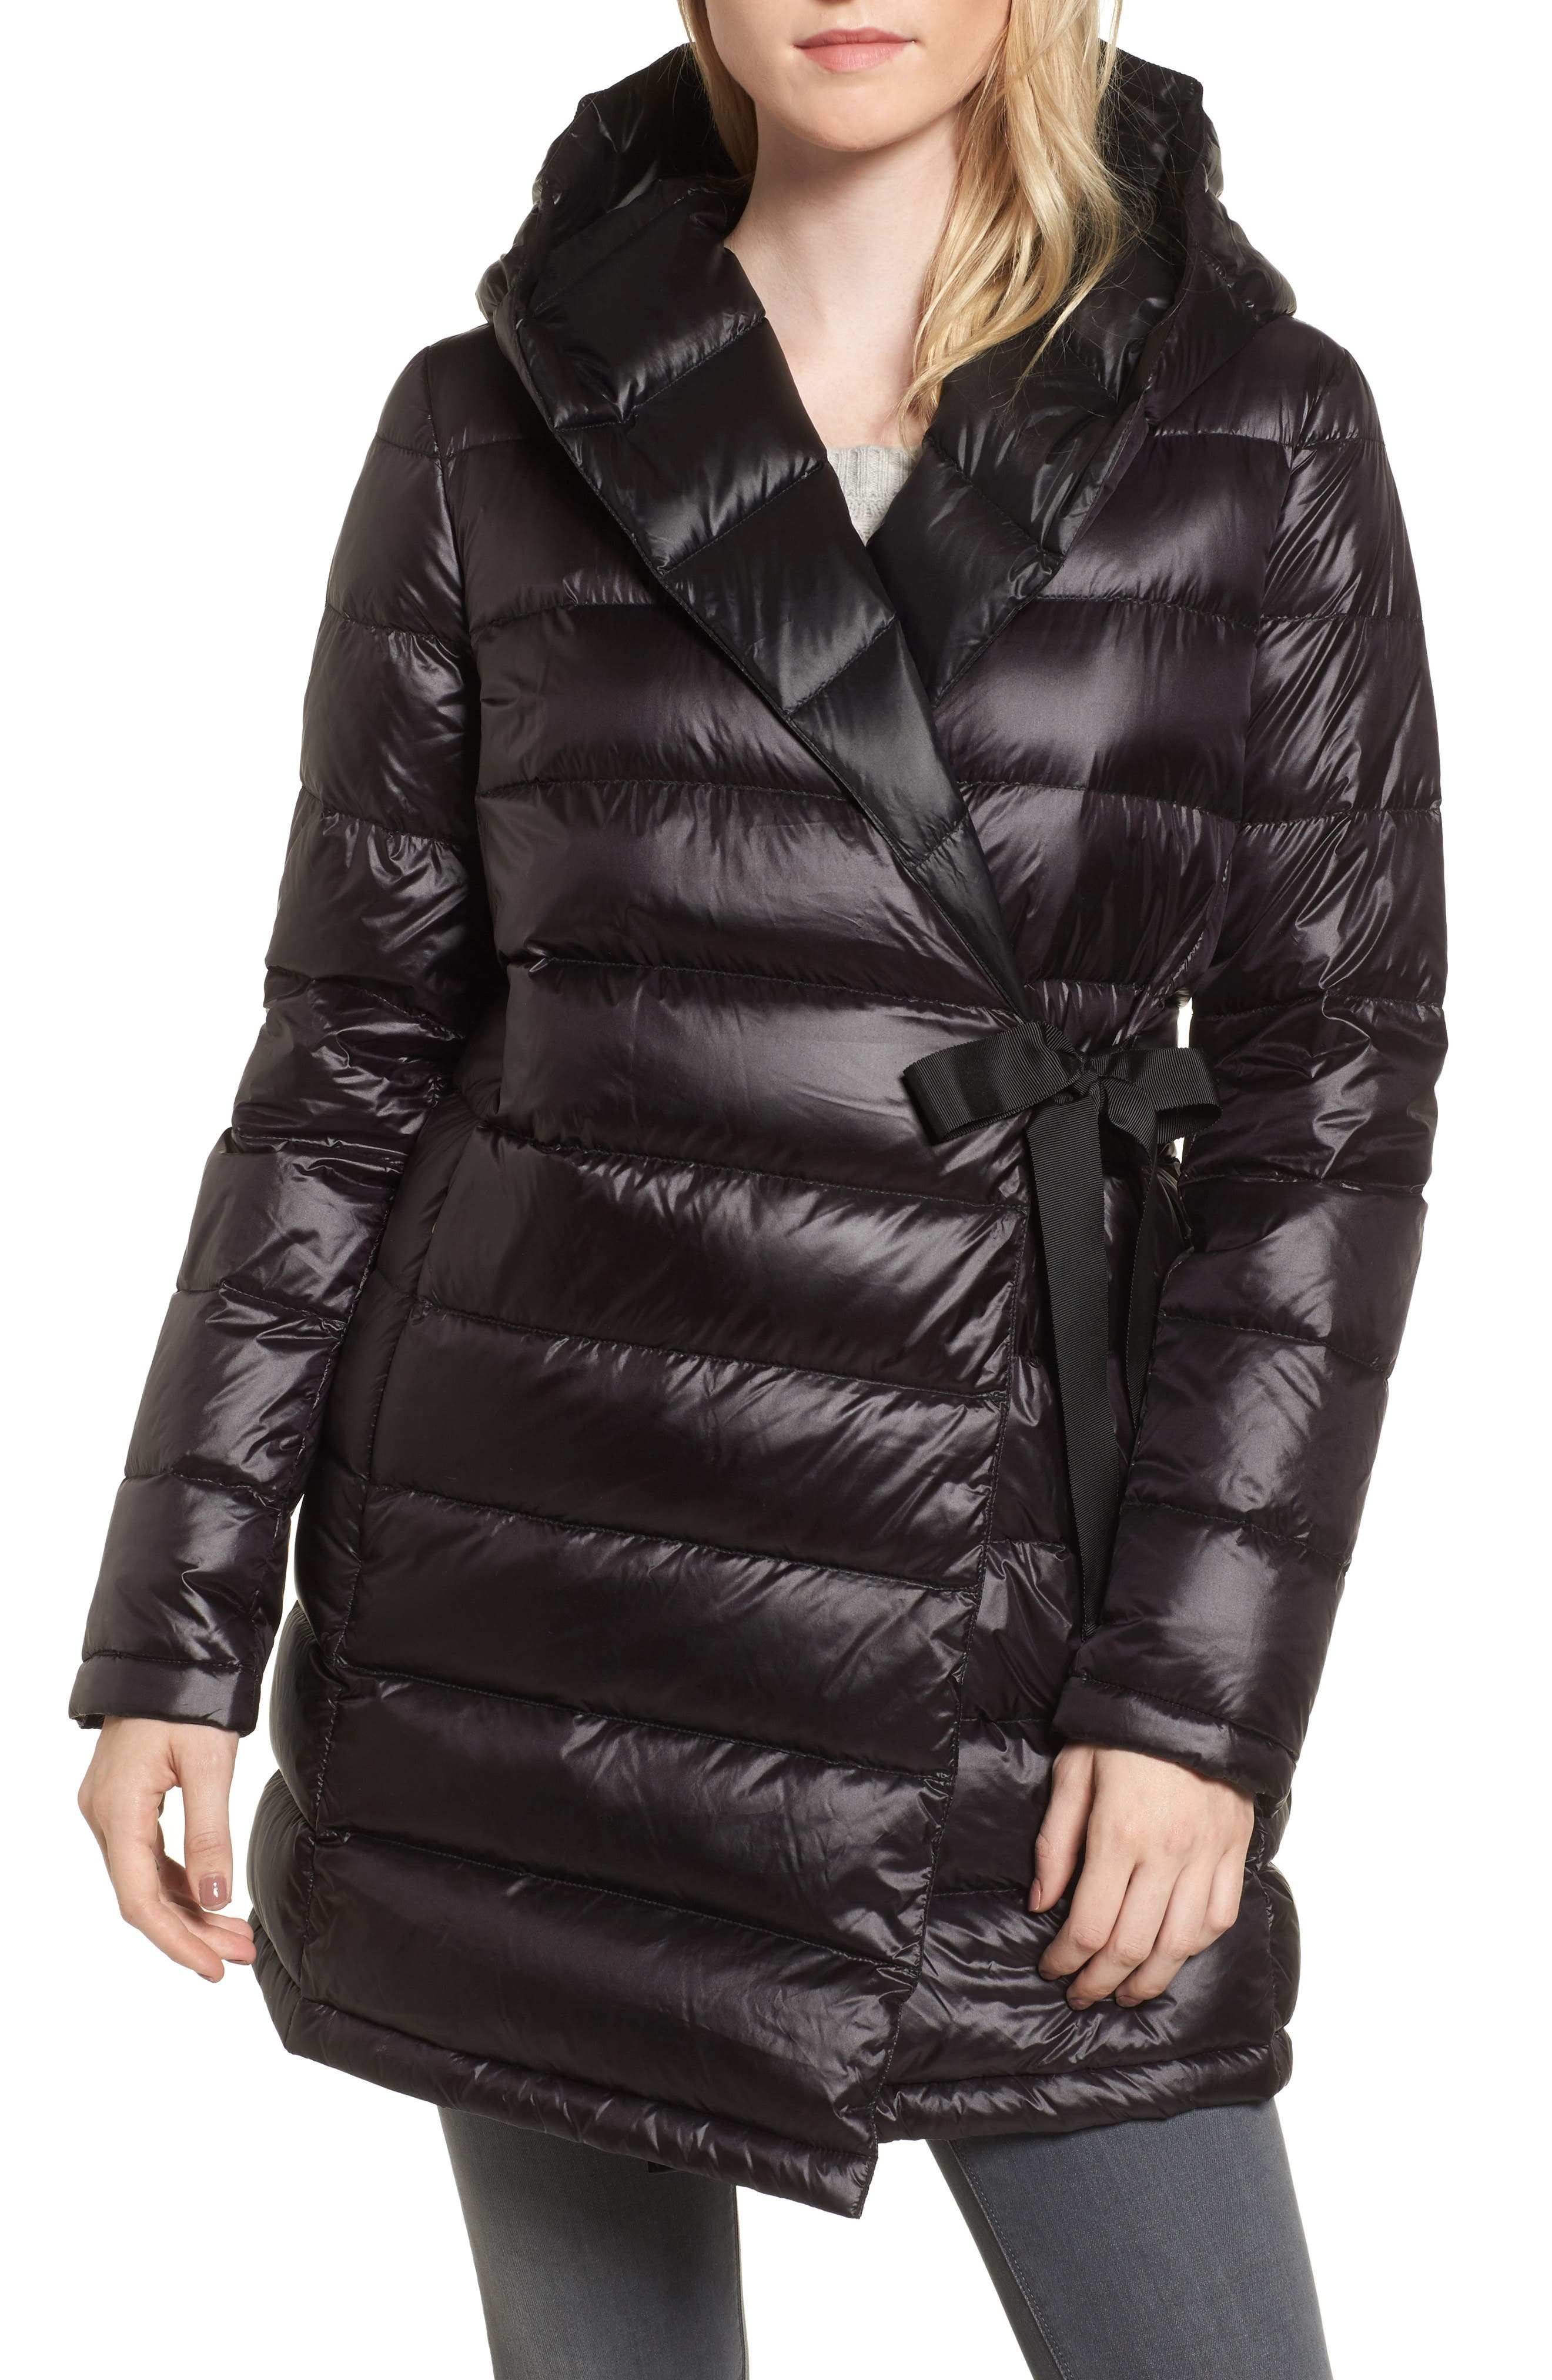 DKNY Water Resistant Packable Down Parka with Tie Closure